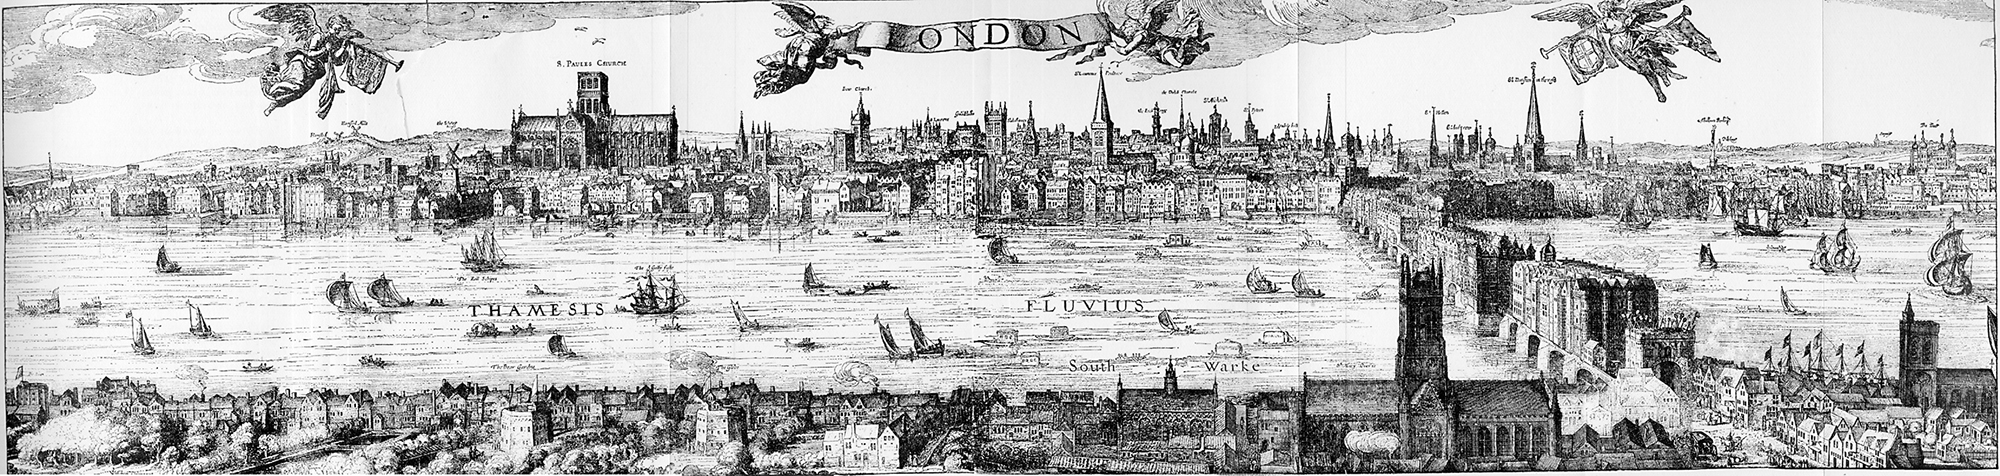 A panorama view of London with St Pauls, the City of London to the North, and the theatre and bear-baiting pits to the south of the river, from the early 1600s.